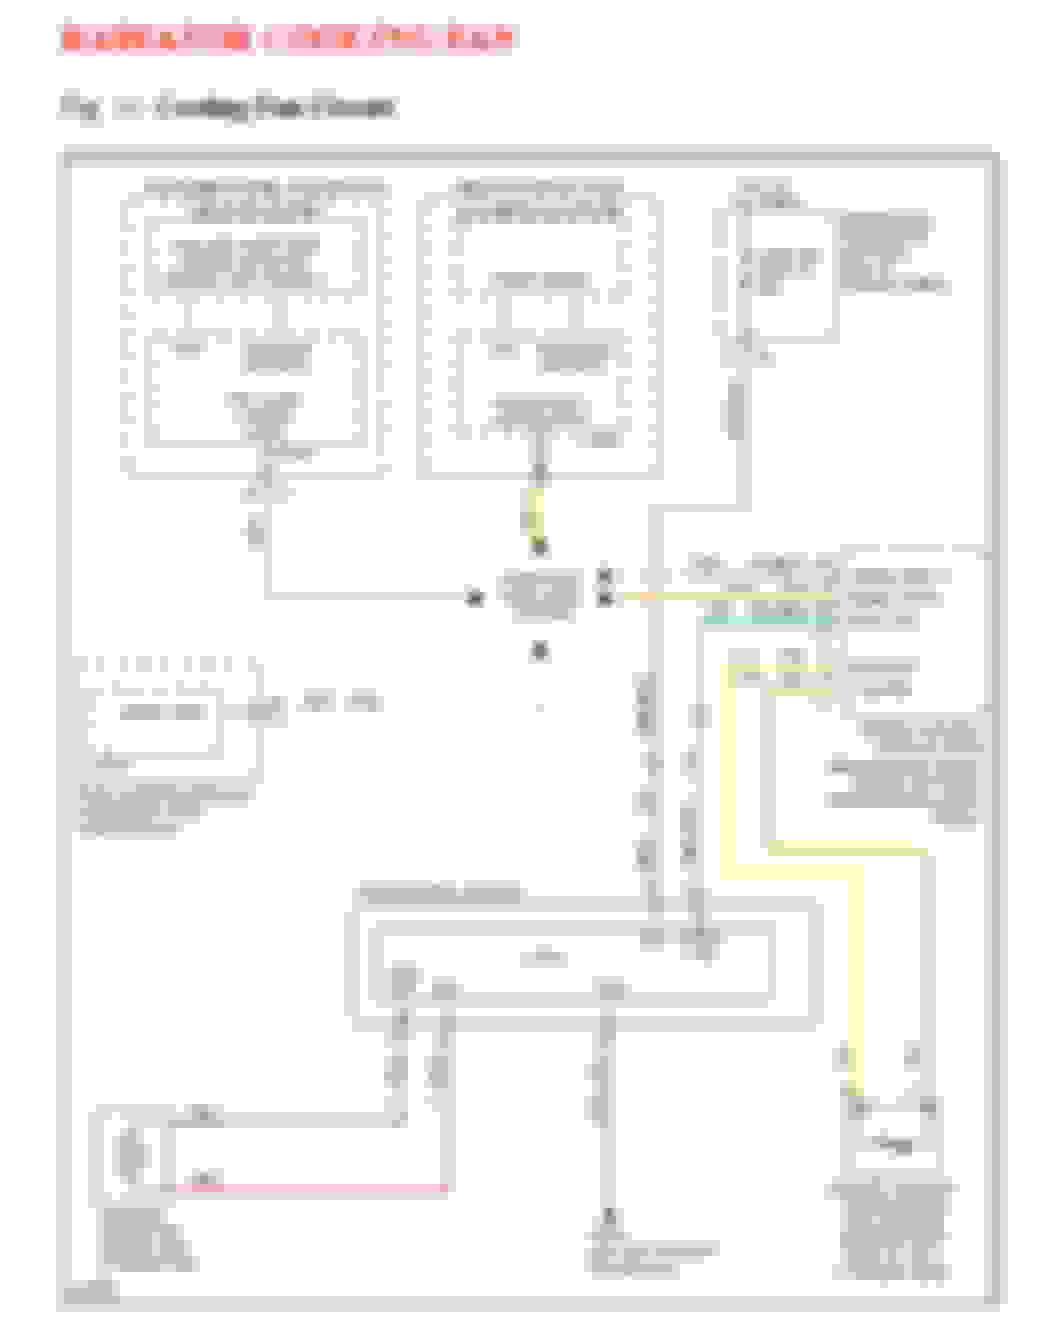 gm cooling fan wiring diagram answer to circuit diagram u2022 rh incoming  potential prospects co uk Cooling Components Fan Wiring Diagram Indoor Fan  Relay ...